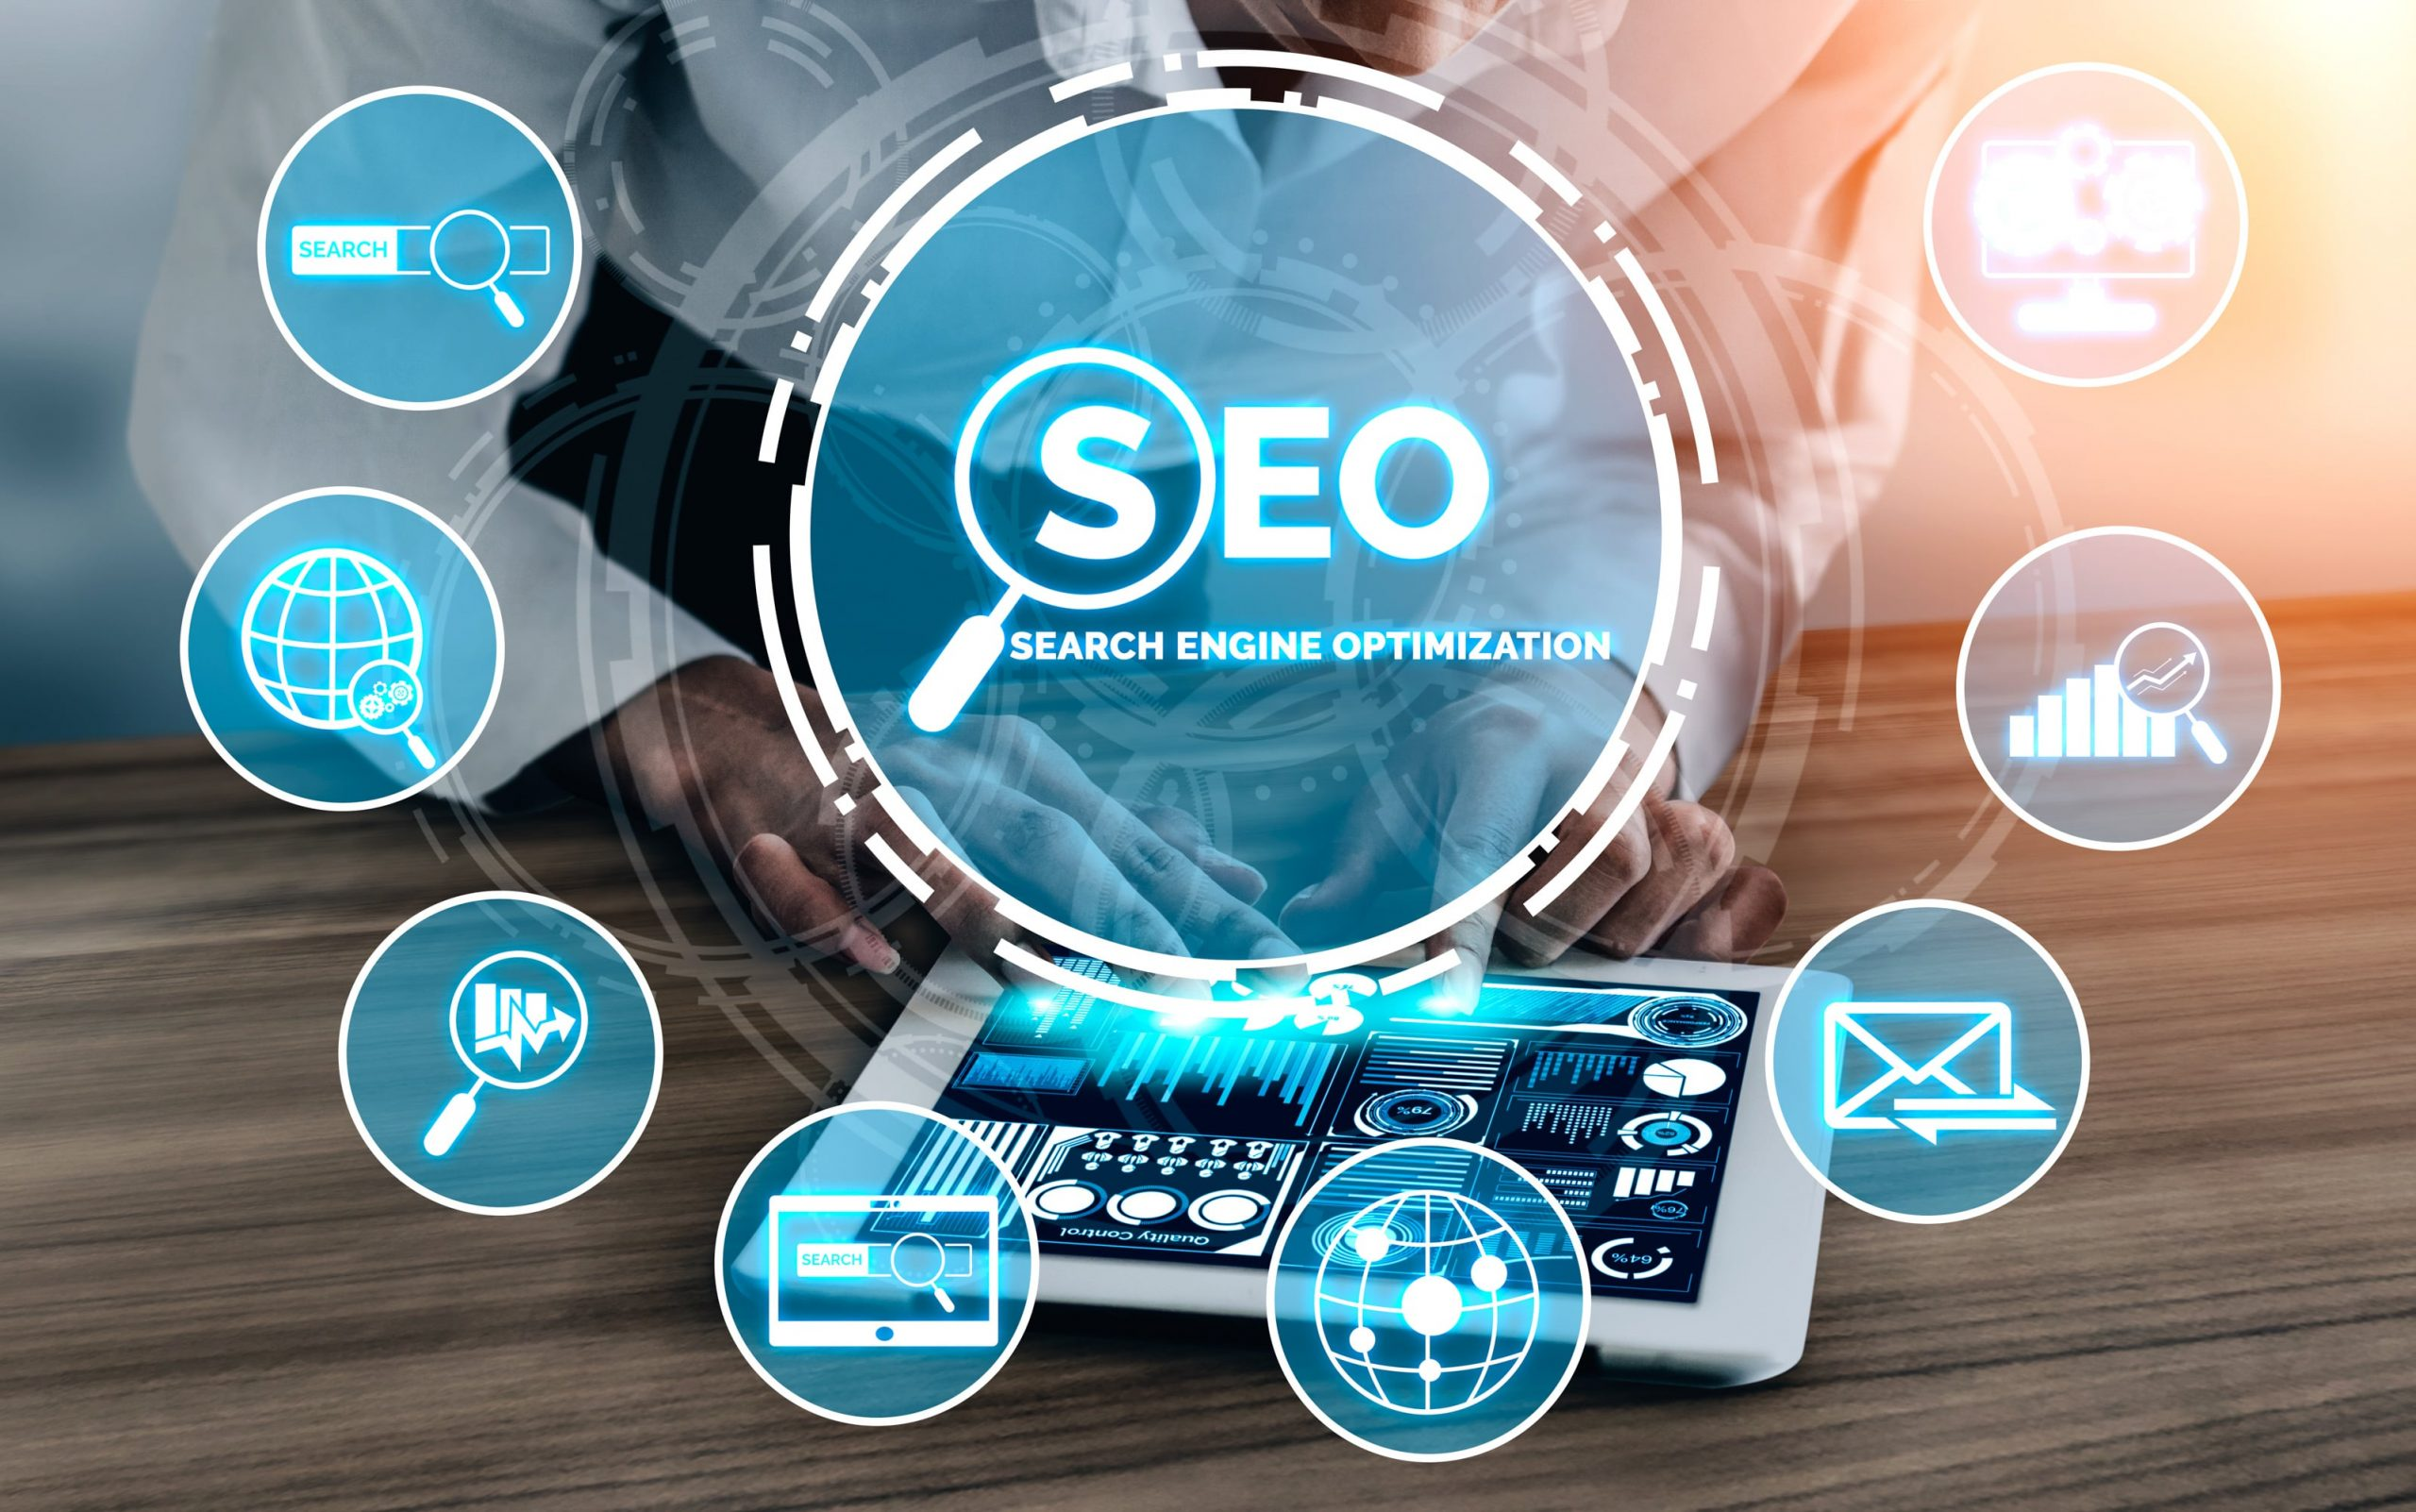 Top 5 SEO Benefits for Your Website